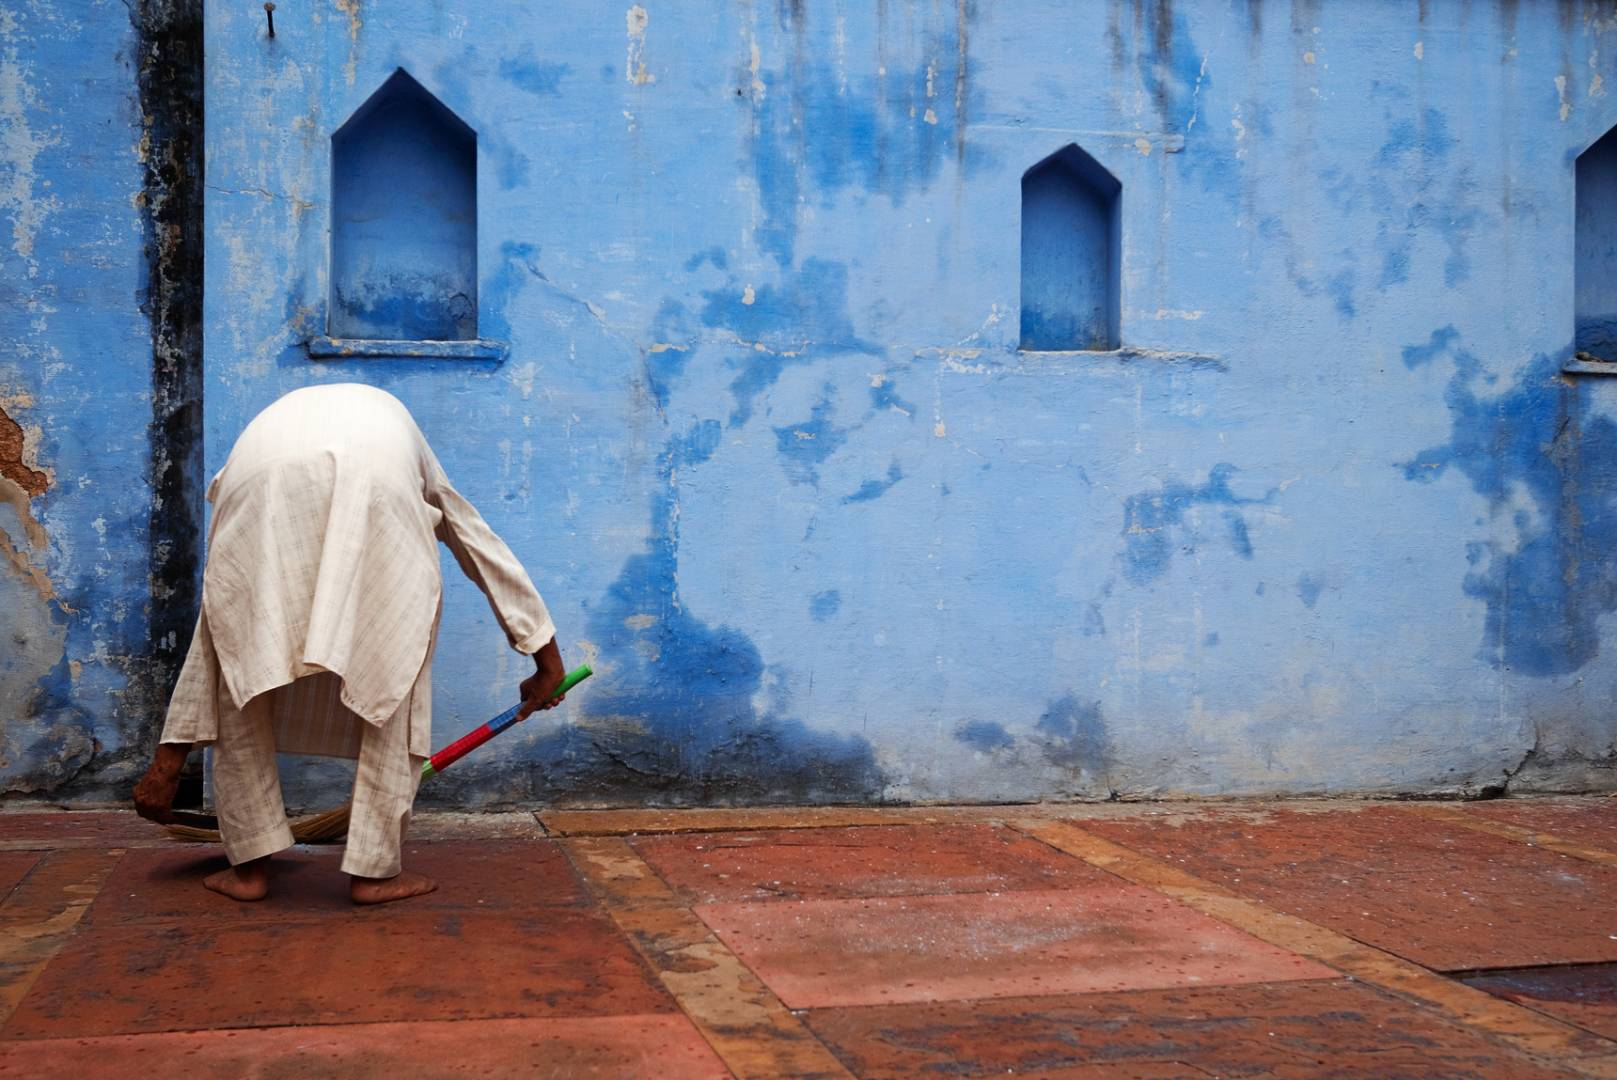 The Nawab of Rukn ud-Daula masjid, Chawri Bazar. Nuruddin sweeps the terrace of the c.18th century mosque. As the others in the group snapped away at the fine stone carvings, I took a more prosaic shot of an elderly caretaker intent on keeping his quarters clean.